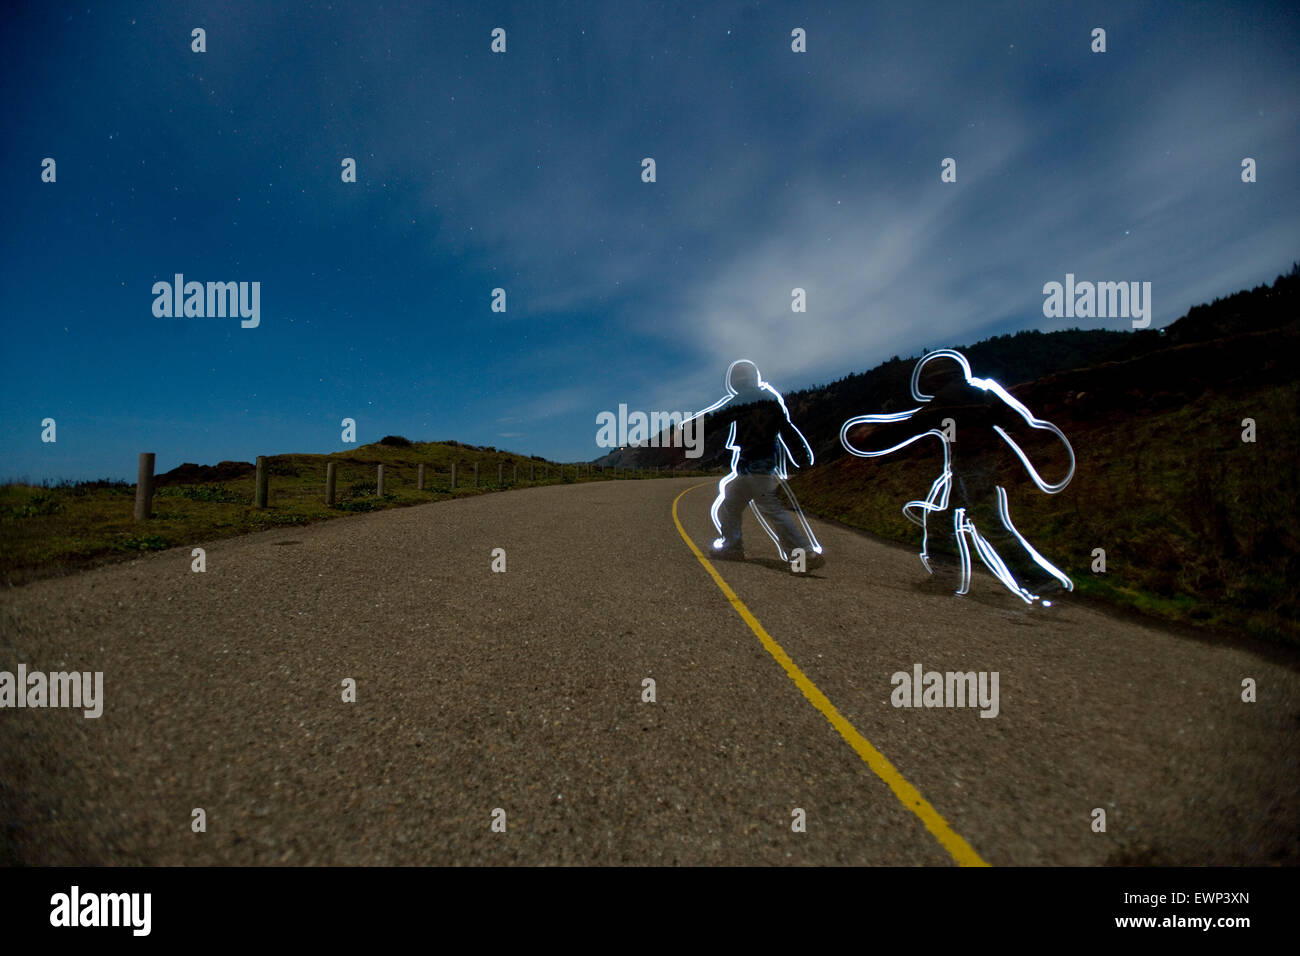 Lightpainting image of two humans walking across a road - Stock Image